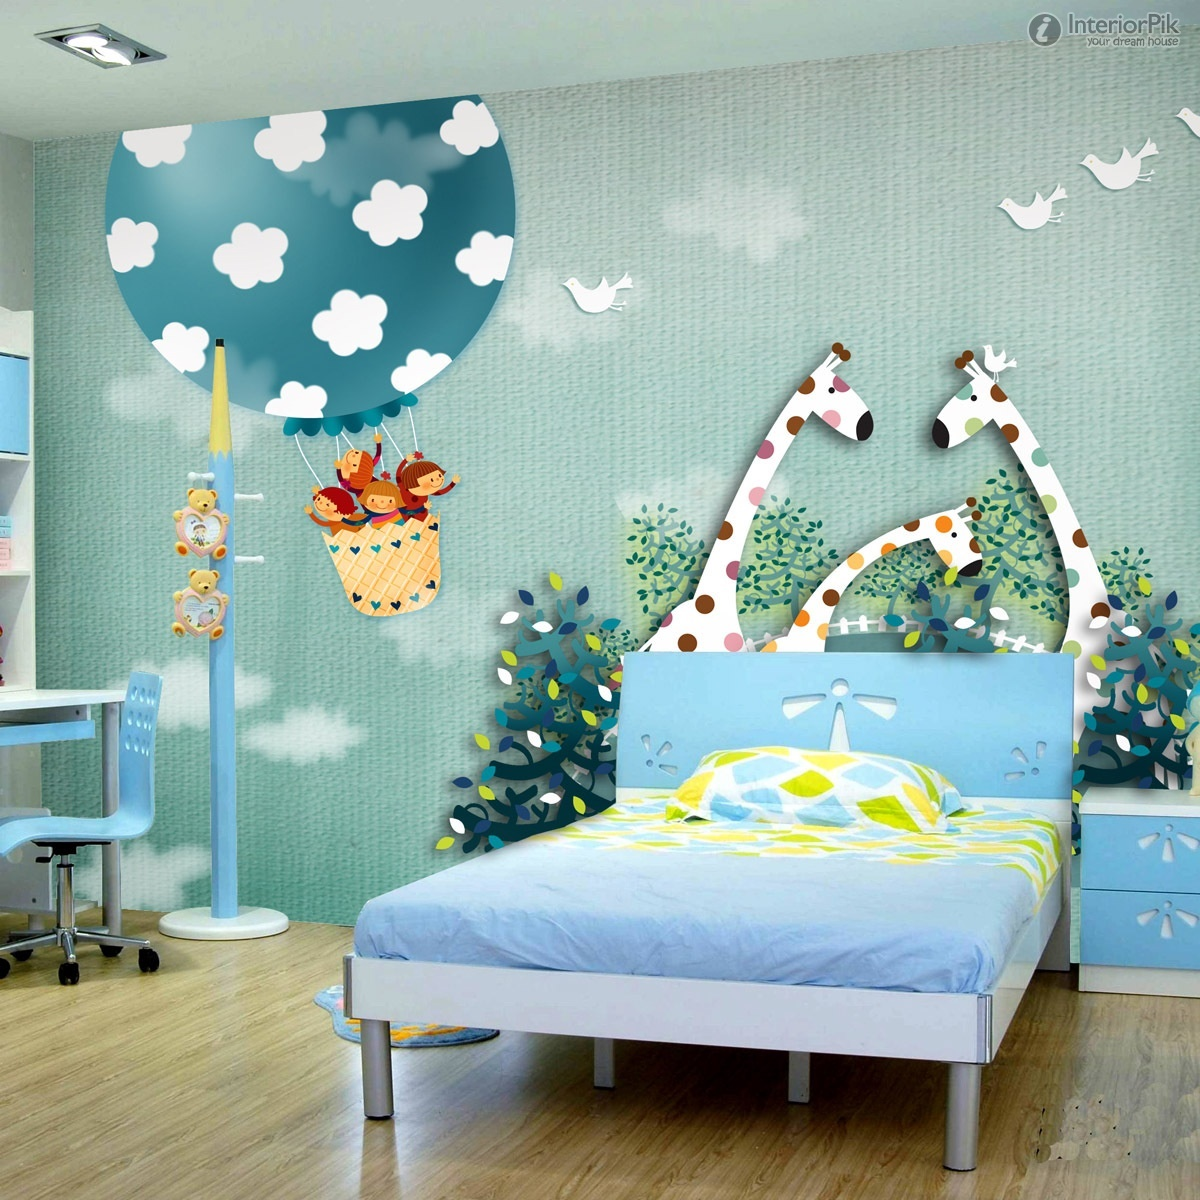 Childrens bedroom wallpaper ideas home decor uk Wallpaper for childrens room